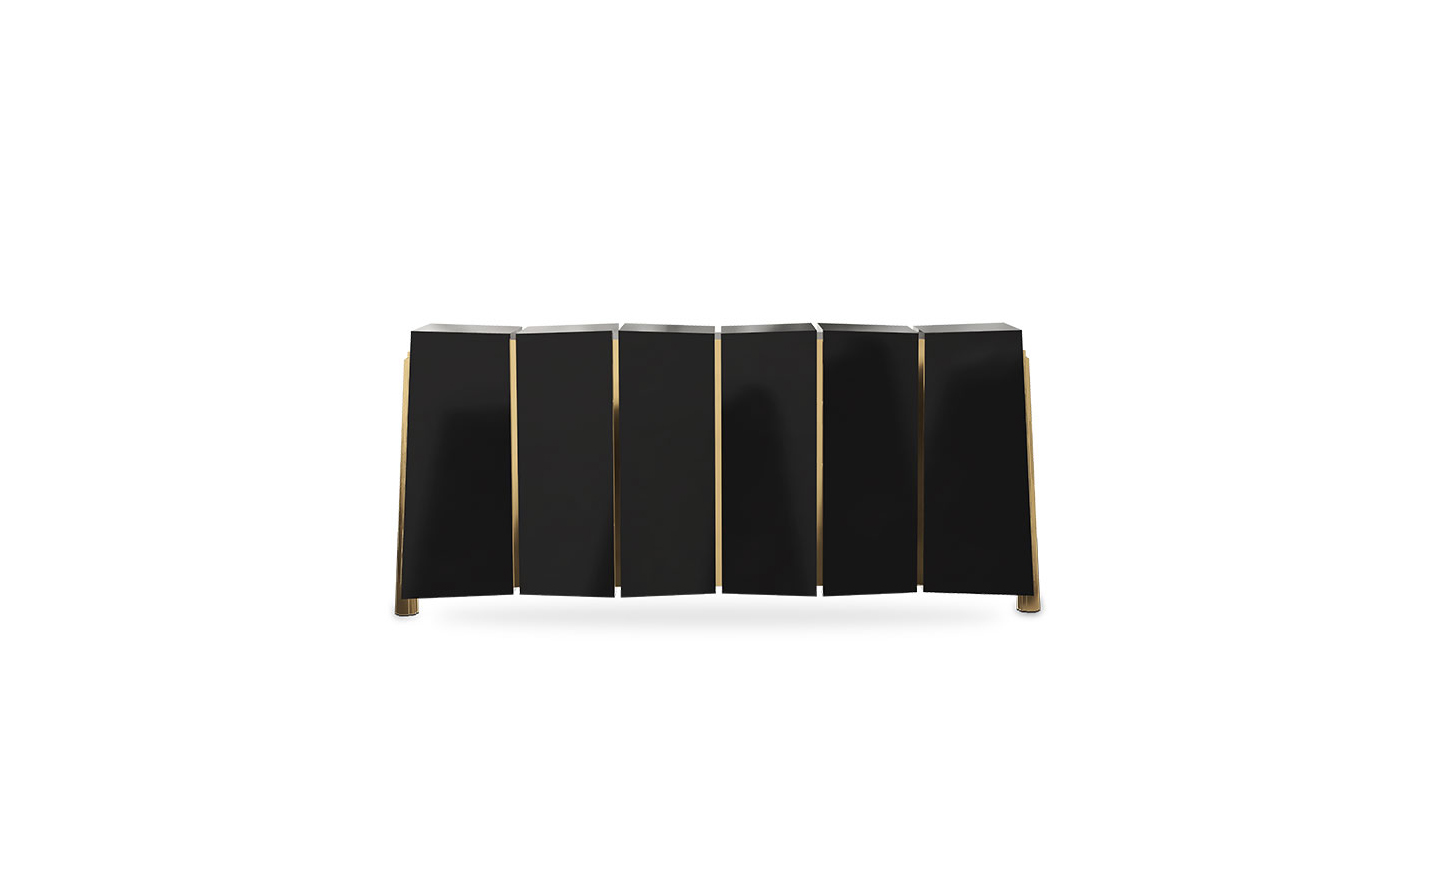 Luxury Lighting Brand Luxxu Has Now It's Own Furniture Collection luxury lighting Luxury Lighting Brand Luxxu Has Now It's Own Furniture Collection luxxu introduces new furniture collection darian sideboard